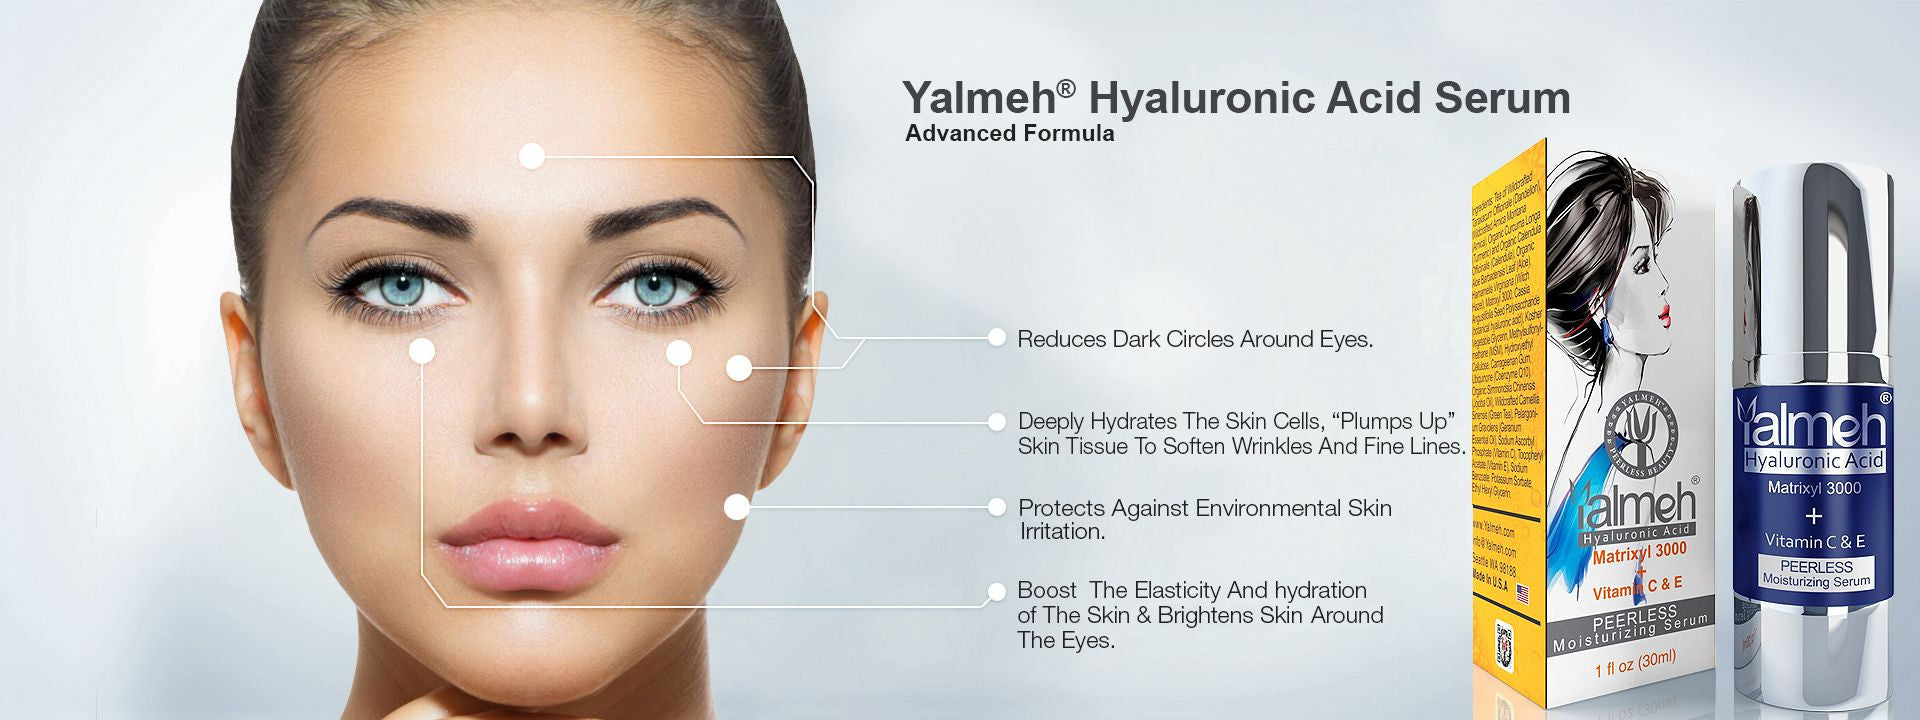 Hyaluronic Acid Serum Advance By Yalmeh Naturals